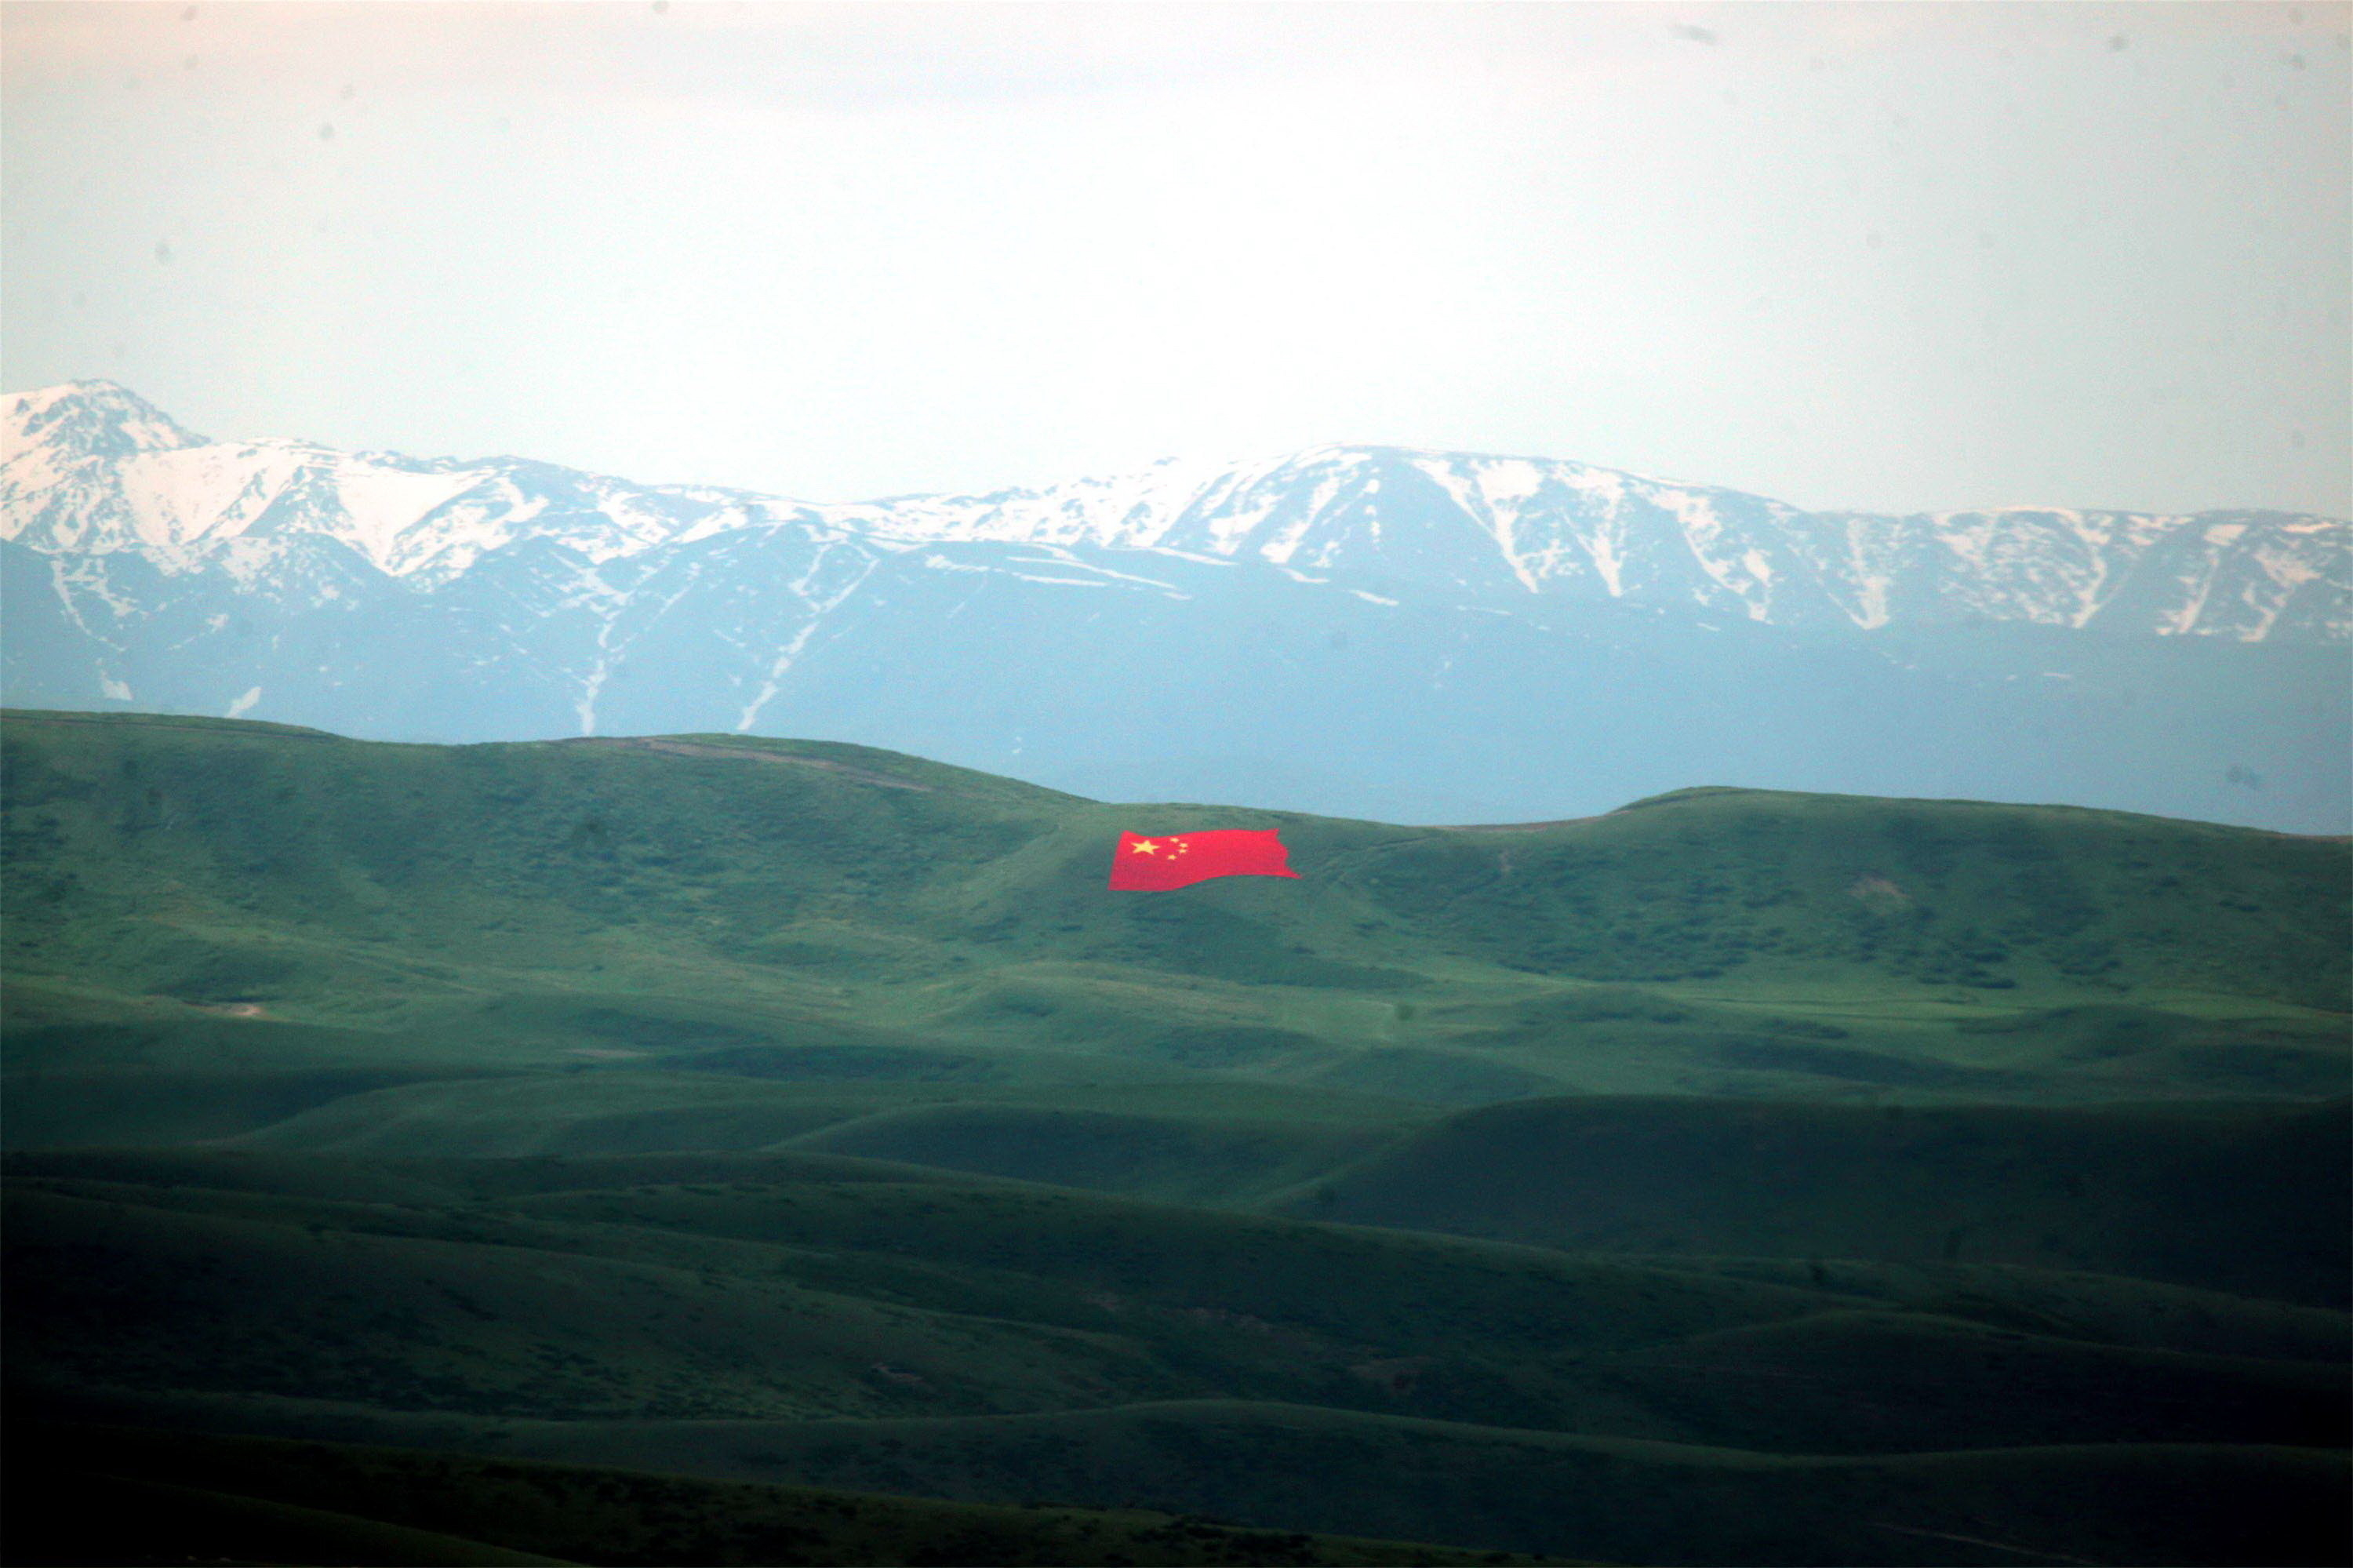 A massive Chinese flag which has been painted on a hill, with a large mountain range in the background